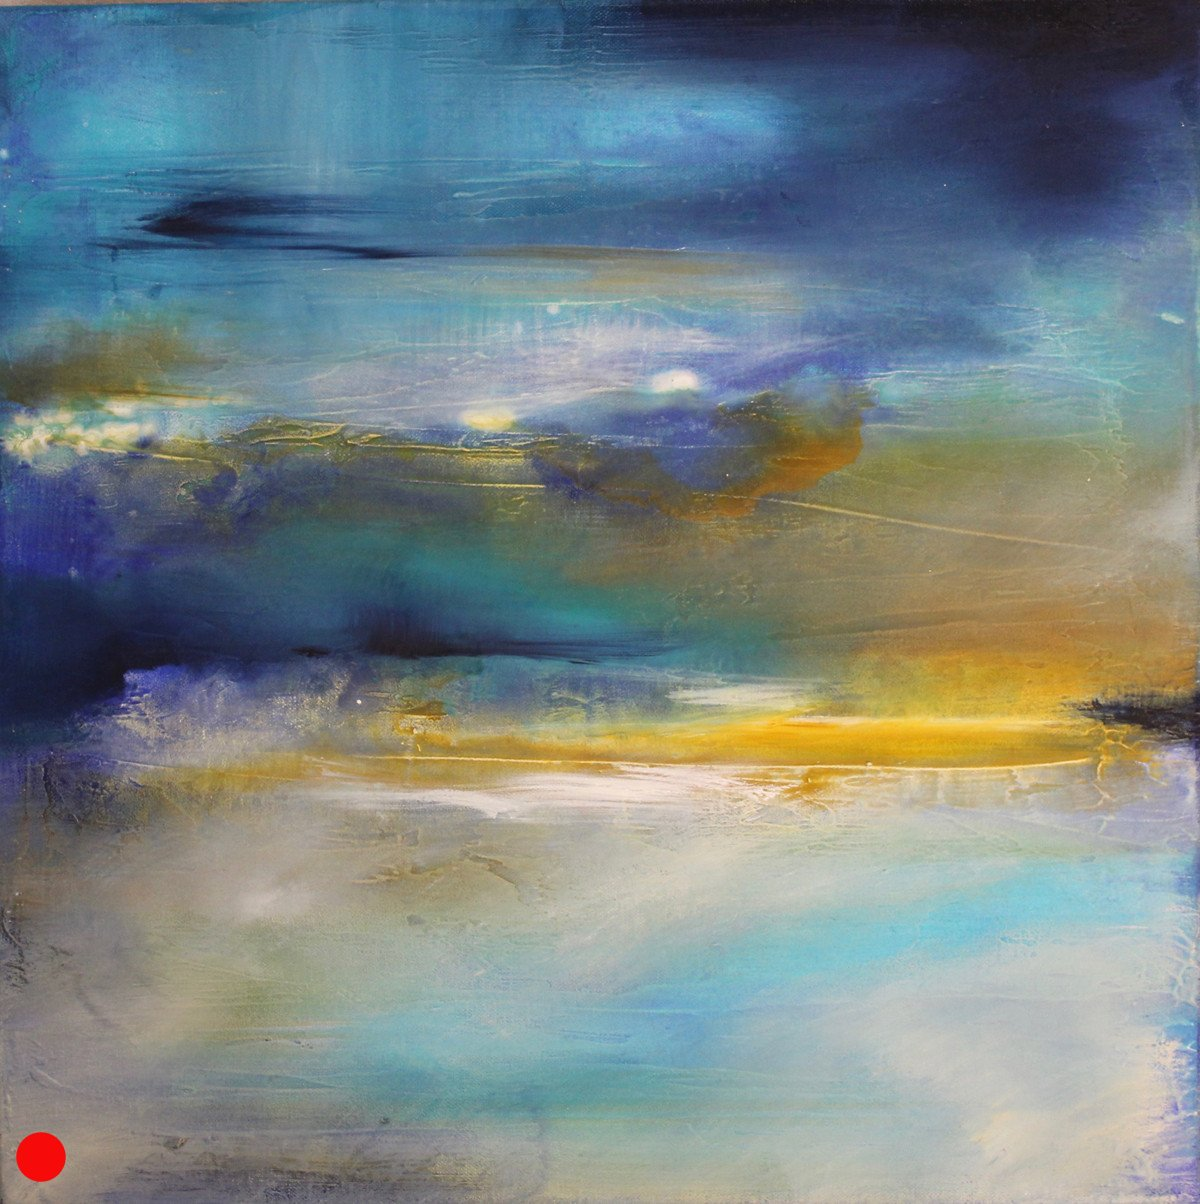 Sky Travels by Joanne Duffy